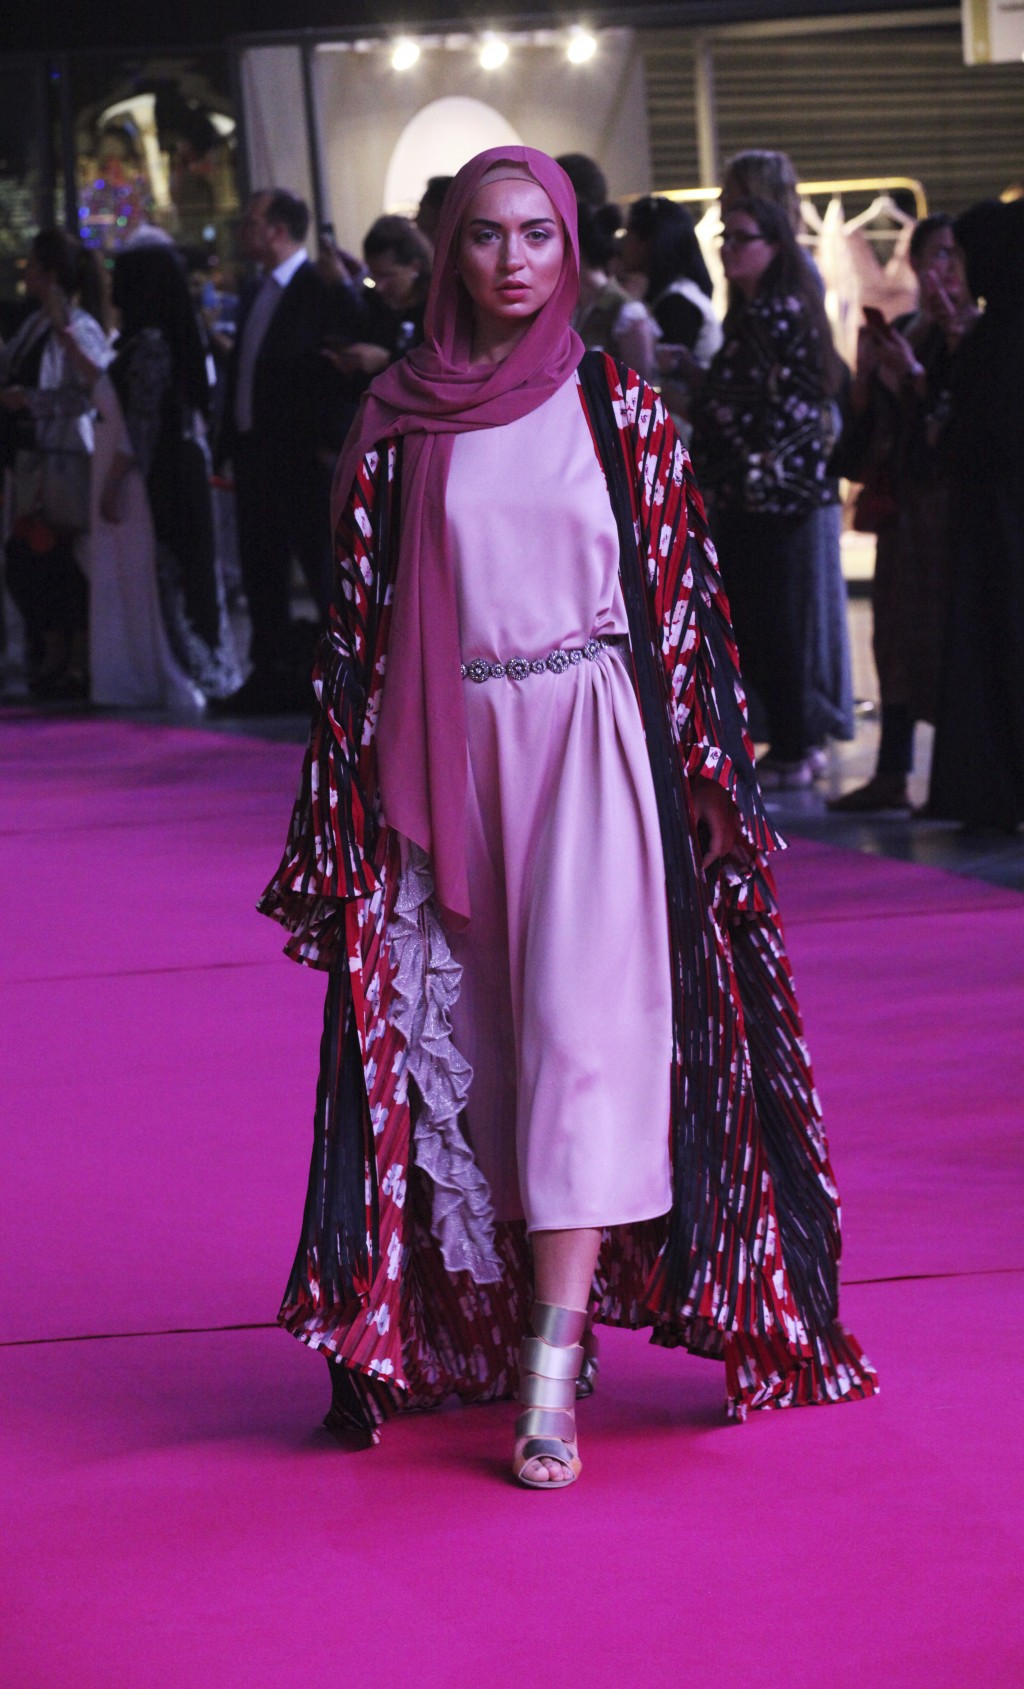 In this Wednesday, March 28, 2018 photograph, a model shows off a modest fashion outfit in Dubai, United Arab Emirates. The Islamic Fashion and Design...